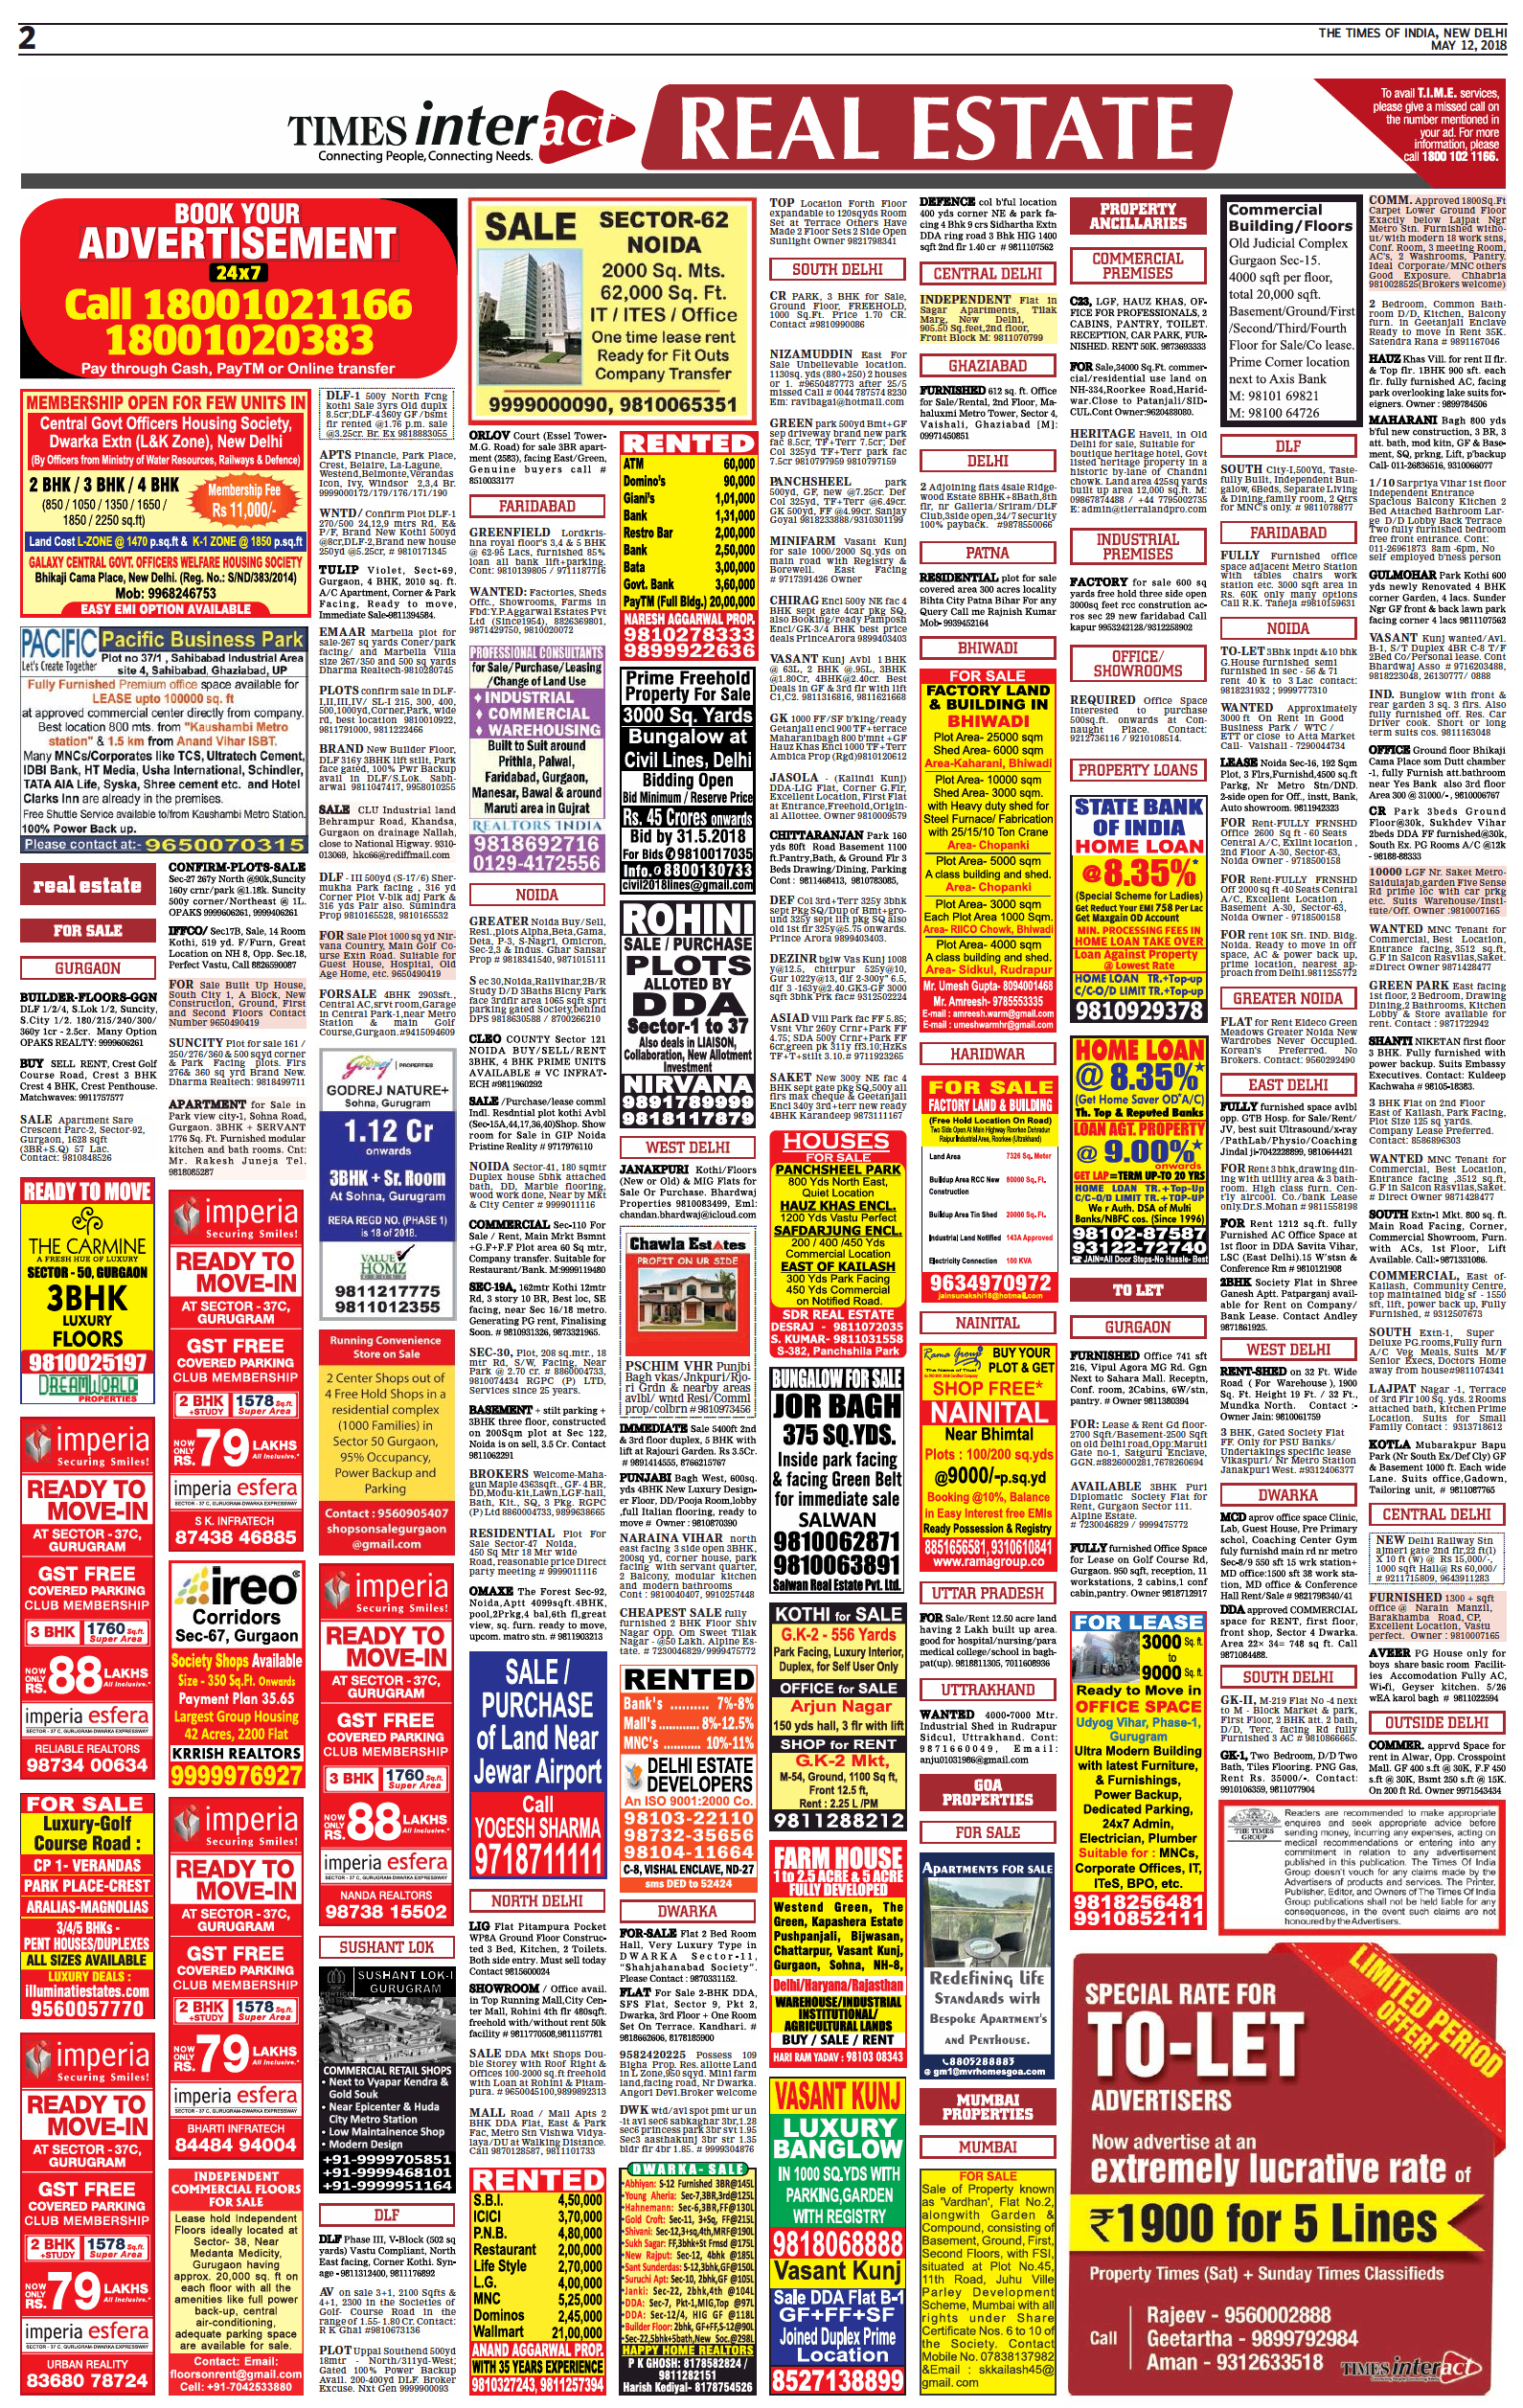 Times Interact Real Estate Ad